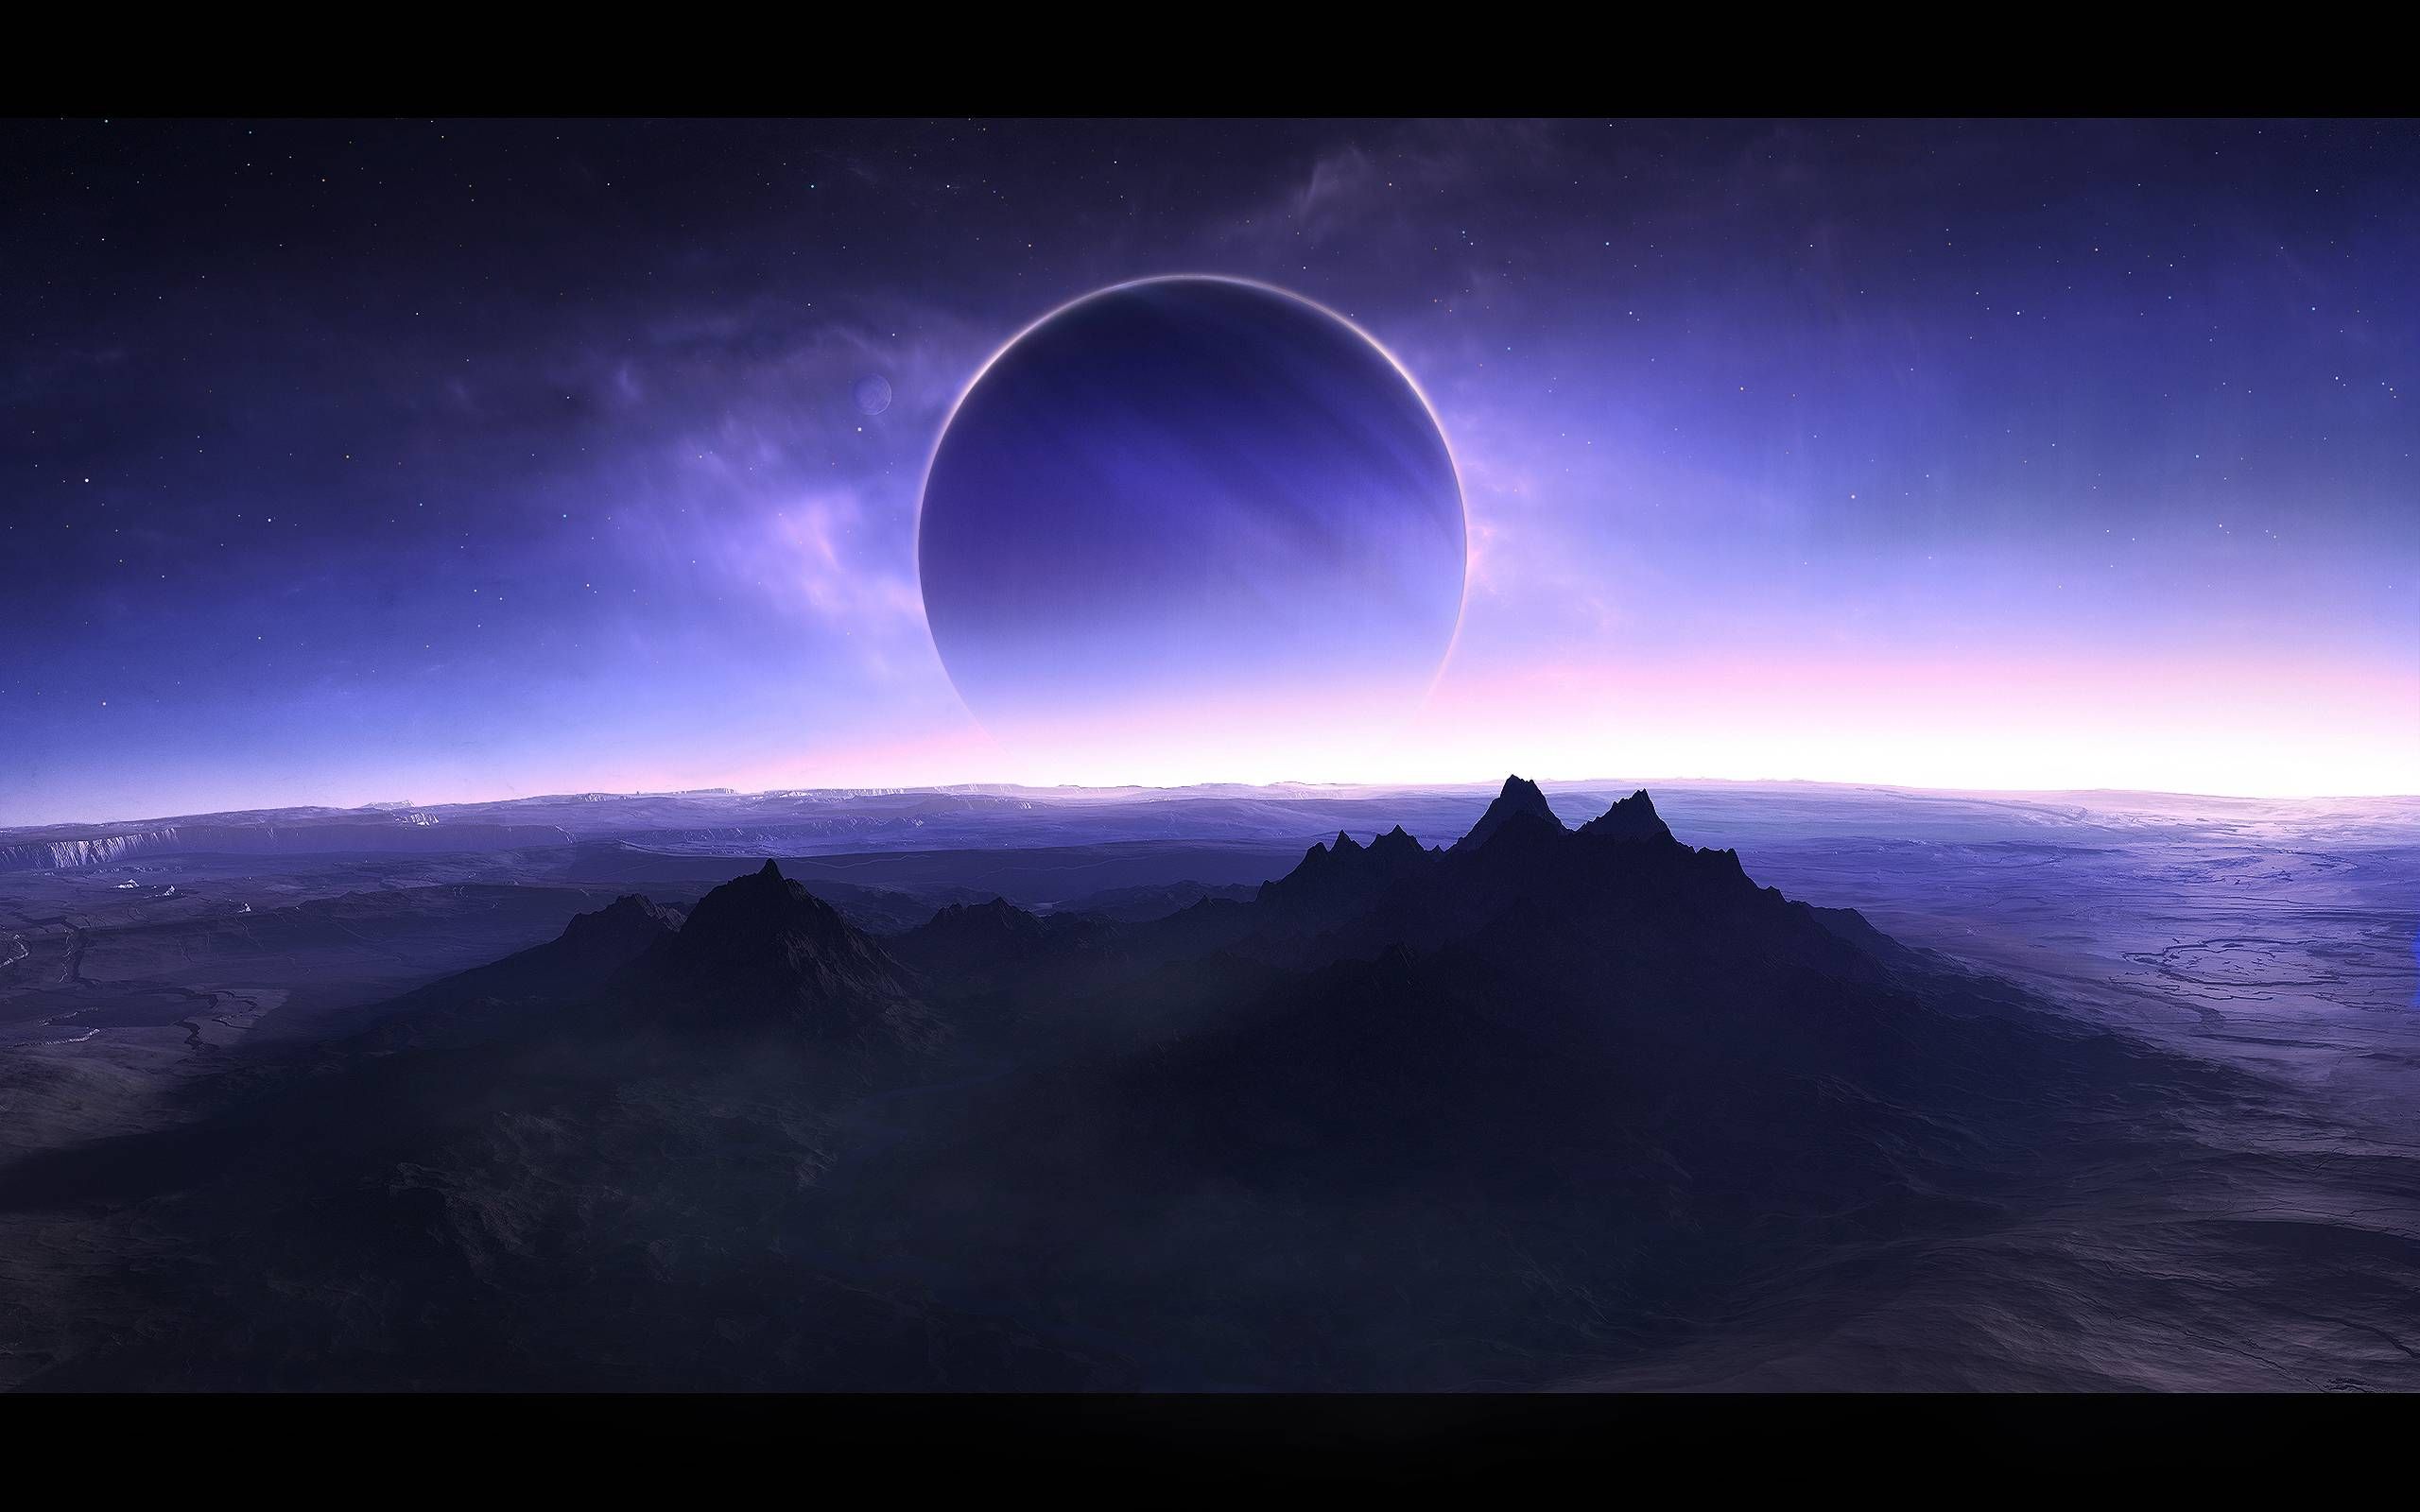 Space and Planet Wallpapers - Taringa!